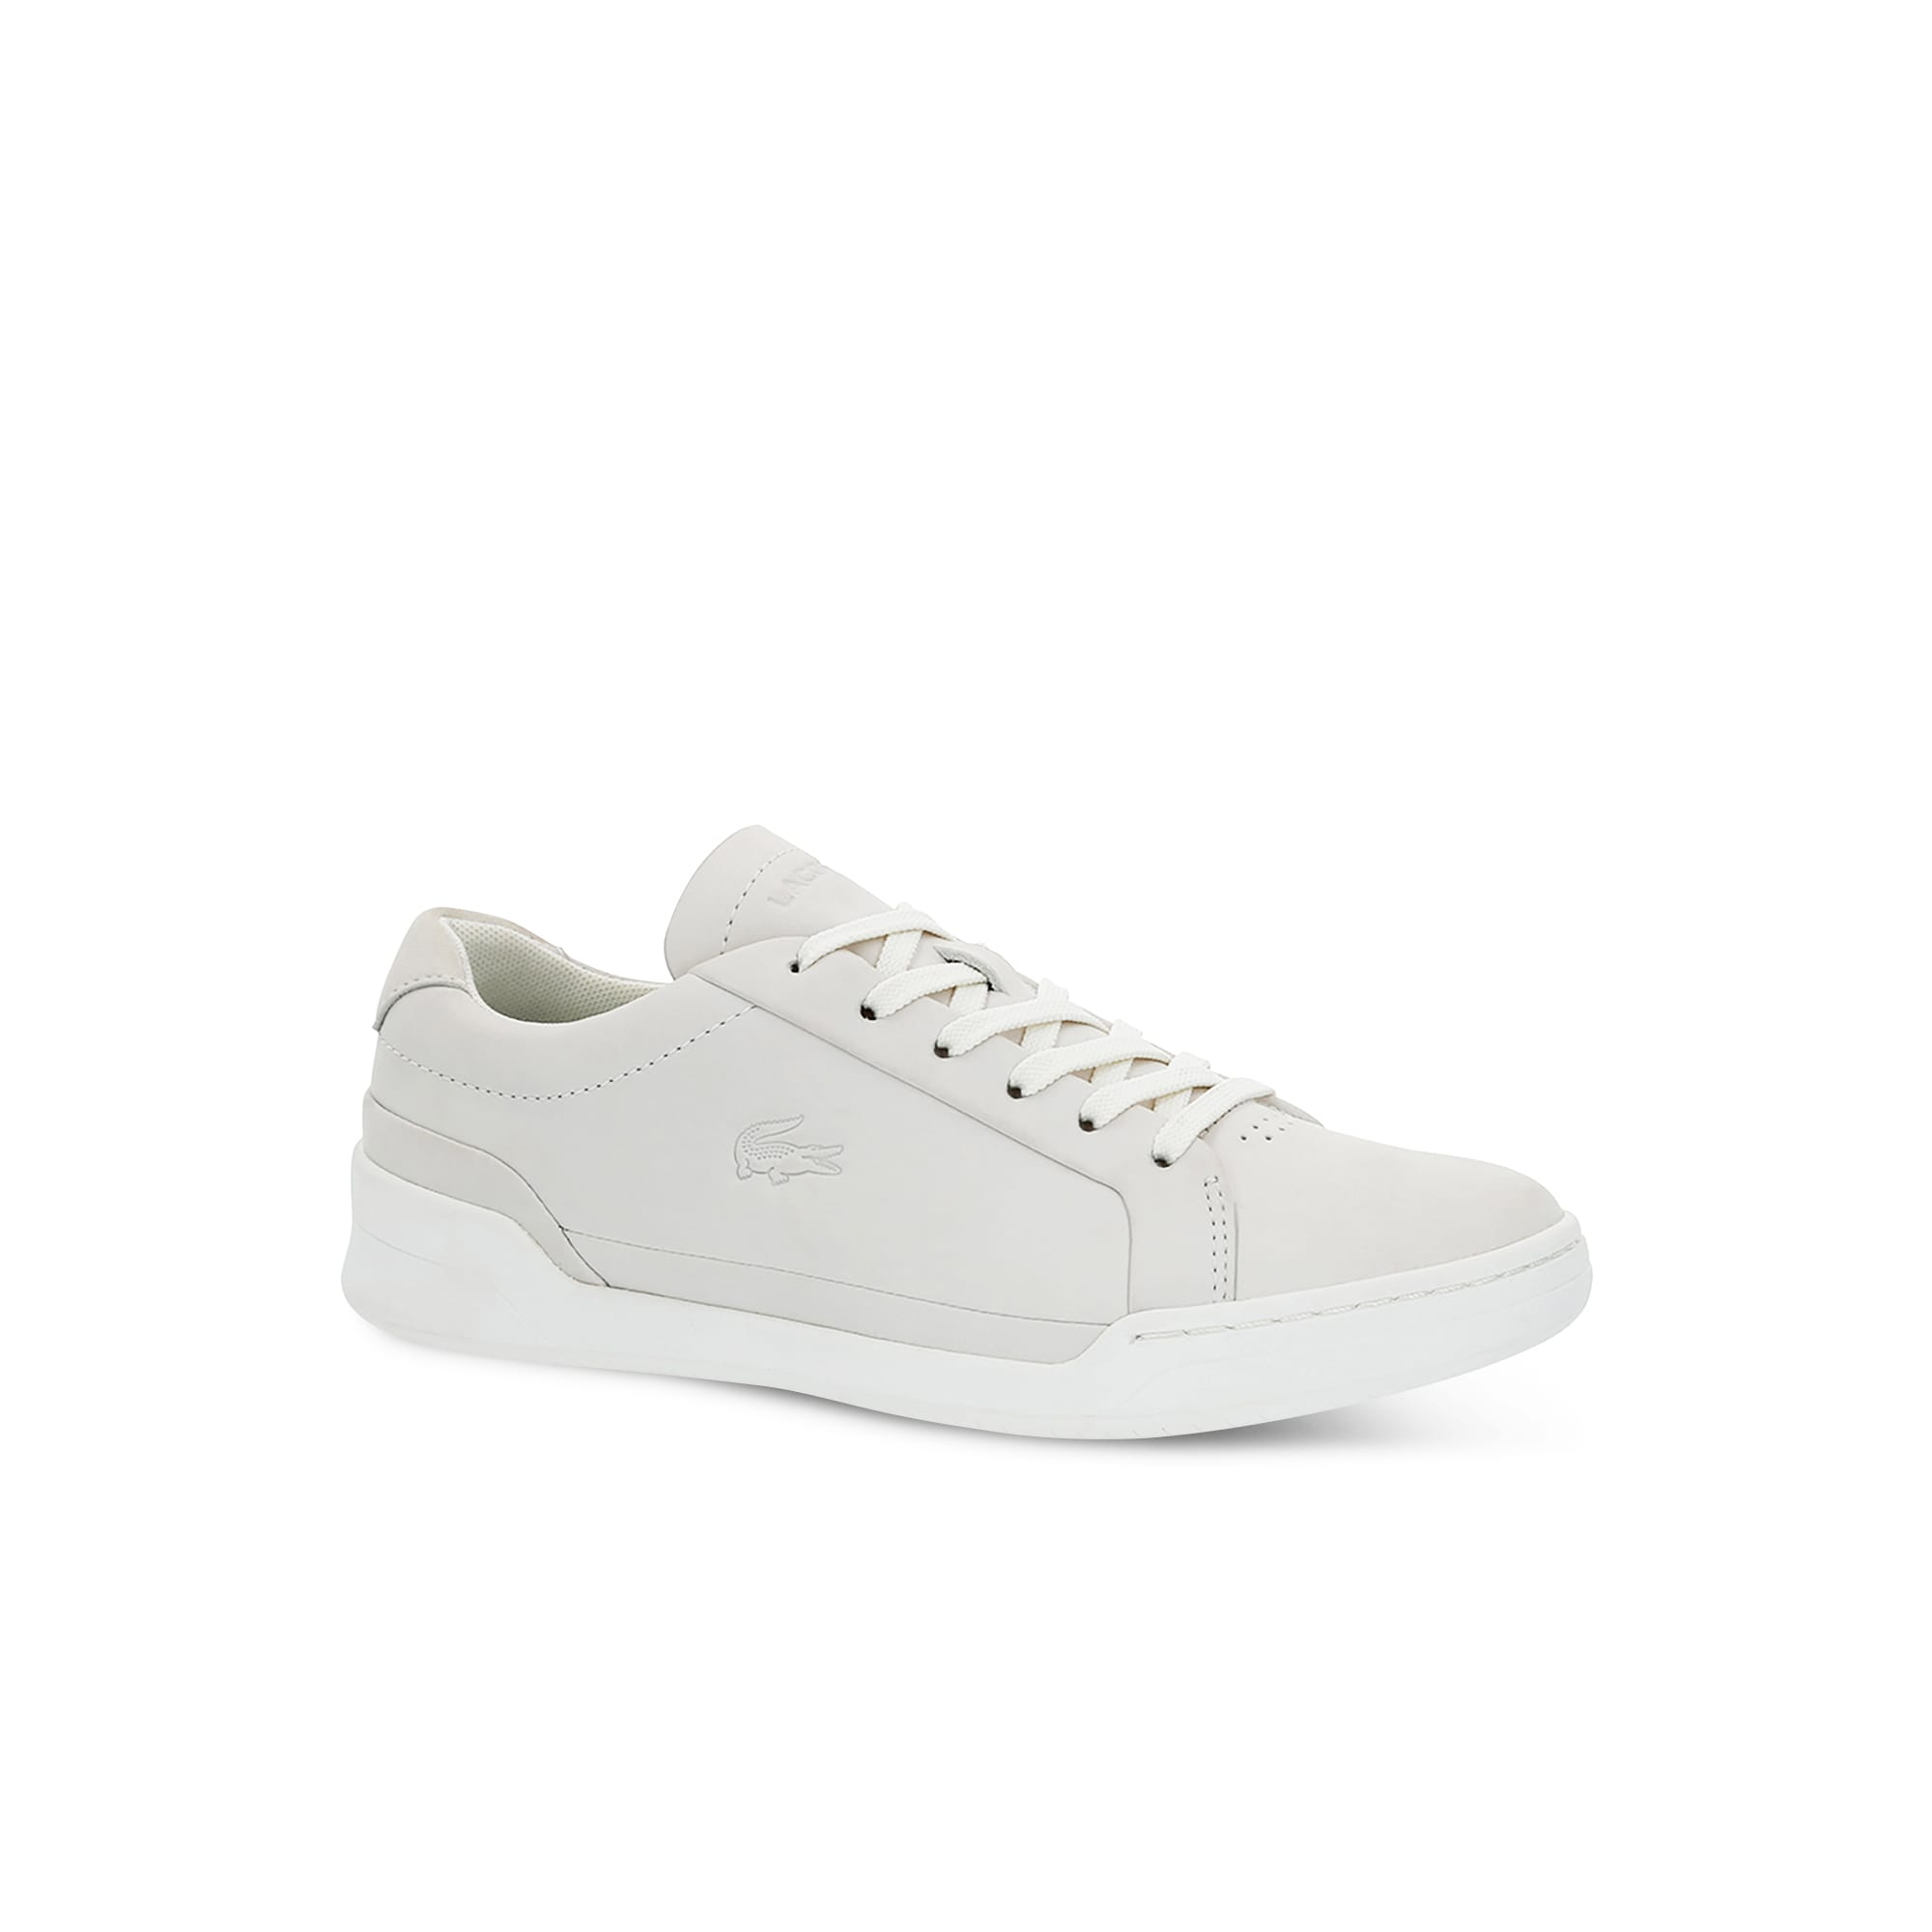 24dc463516a66 Women s Challenge Nubuck Leather Sneakers